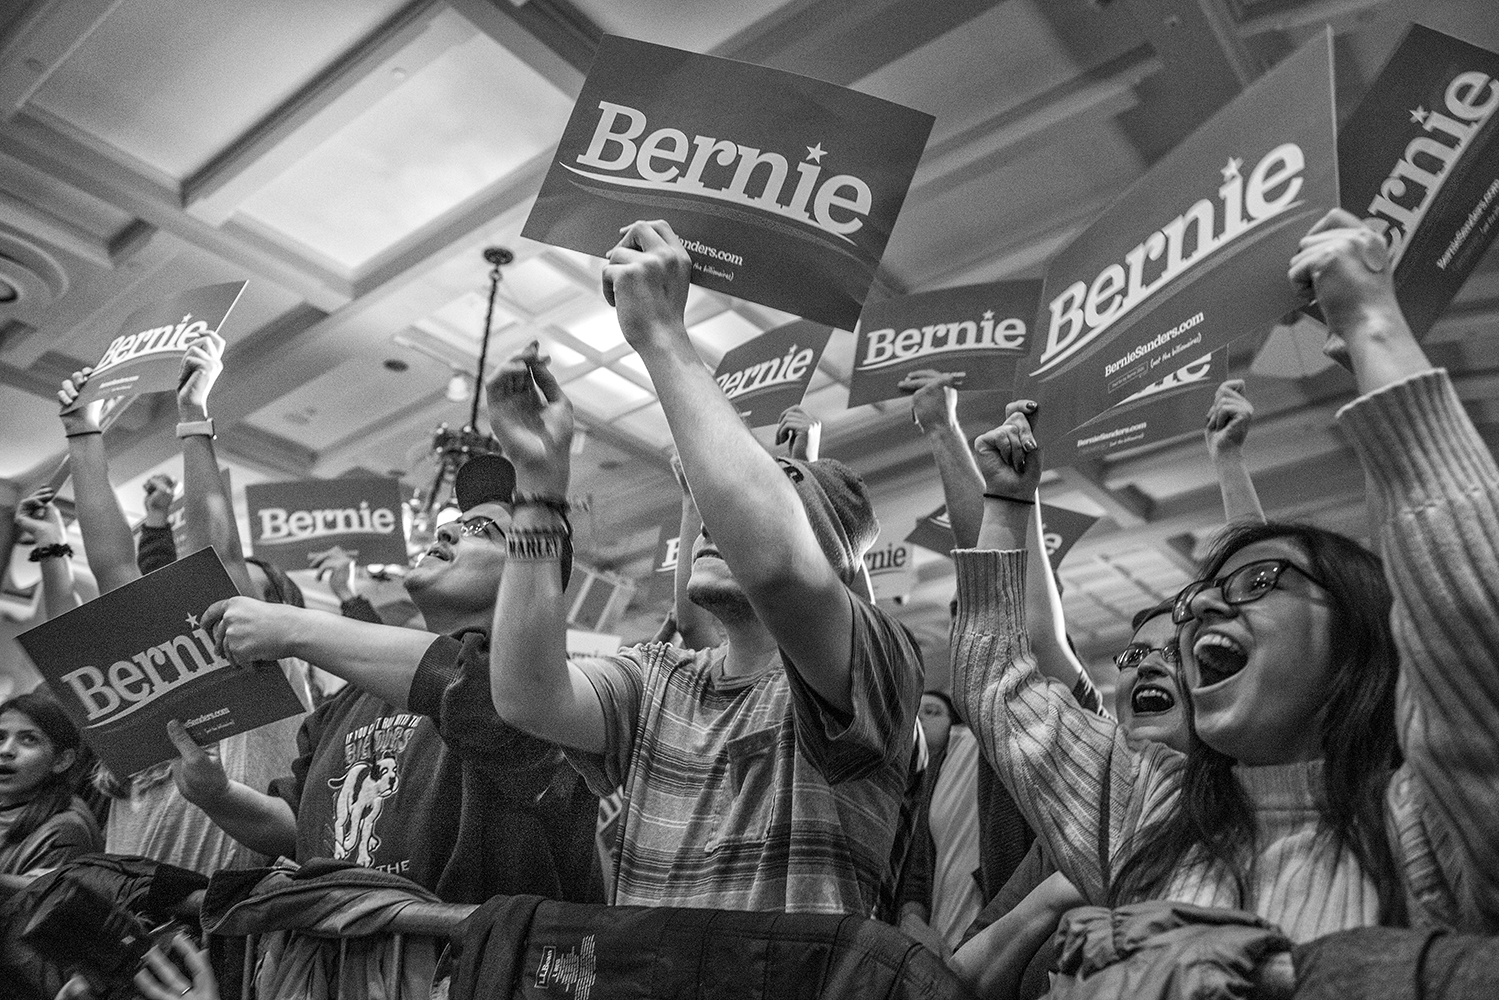 Supporters cheer as Sen. Bernie Sanders, I-Vt., speaks during a campaign rally at the Iowa Memorial Union on Friday, March 8, 2019. The rally was a part of Sen. Sanders' first trip to Iowa since announcing his 2020 presidential bid.